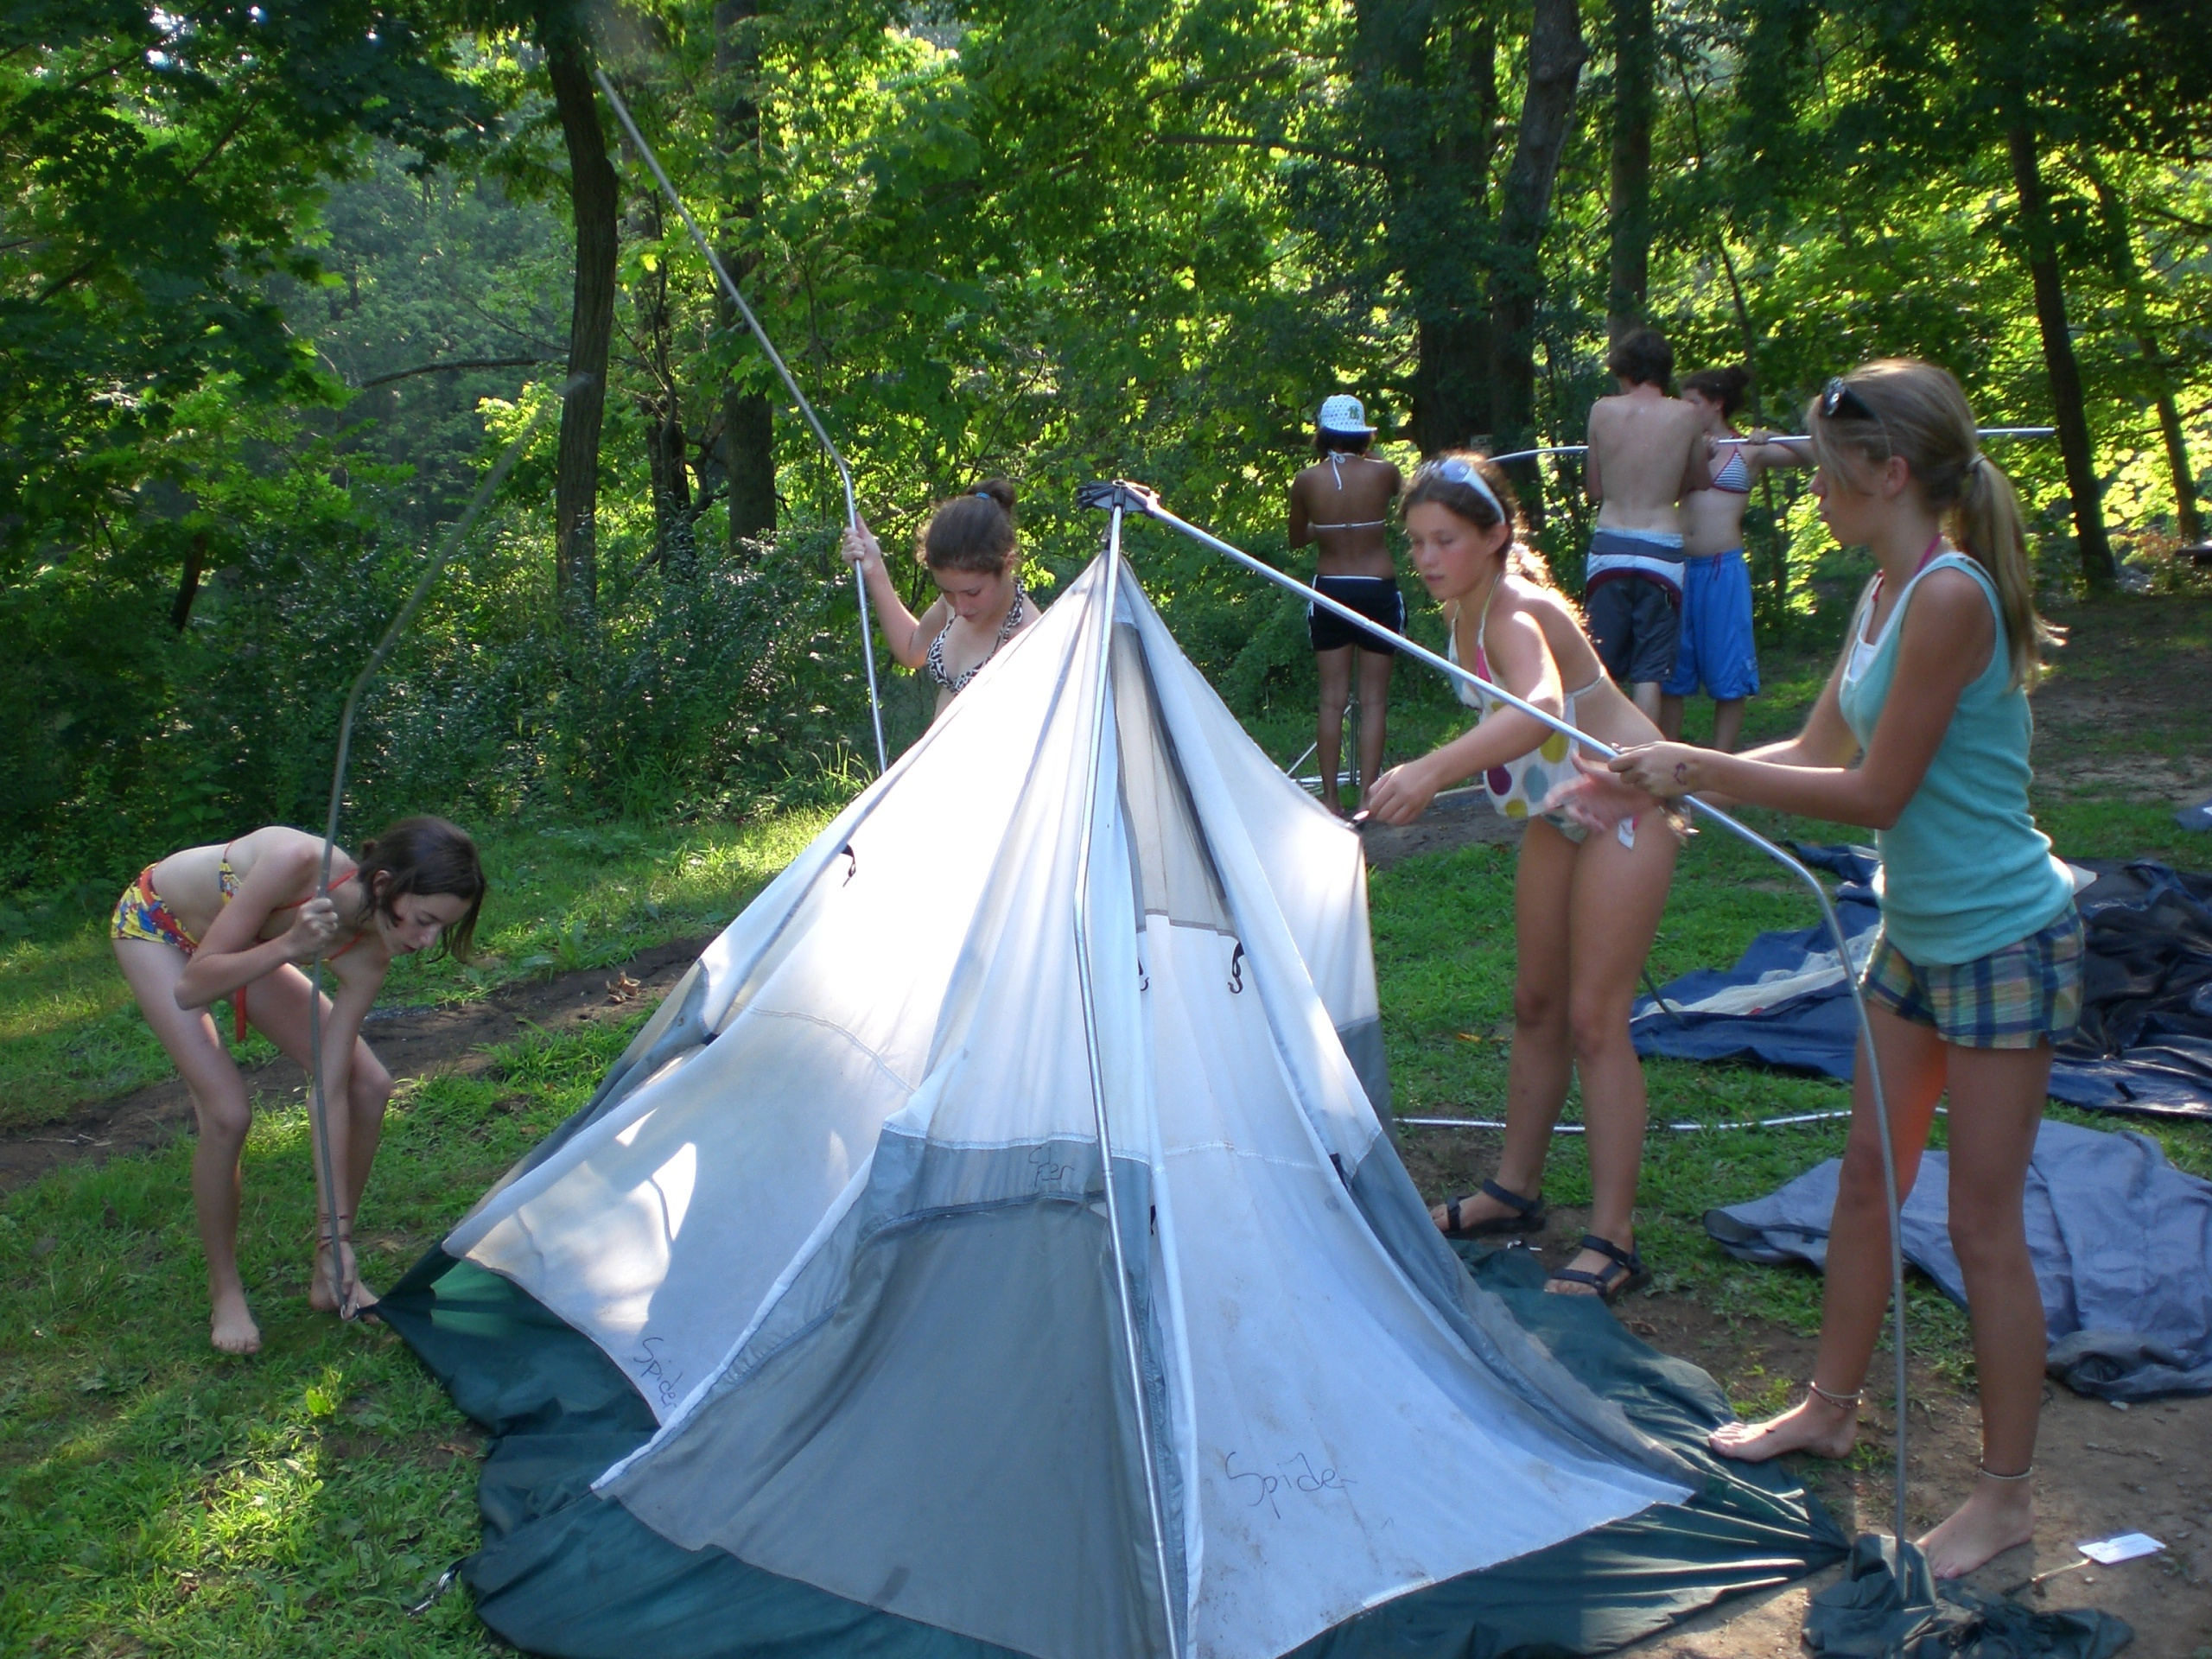 Summer-Camps-for-Teens-3.jpg